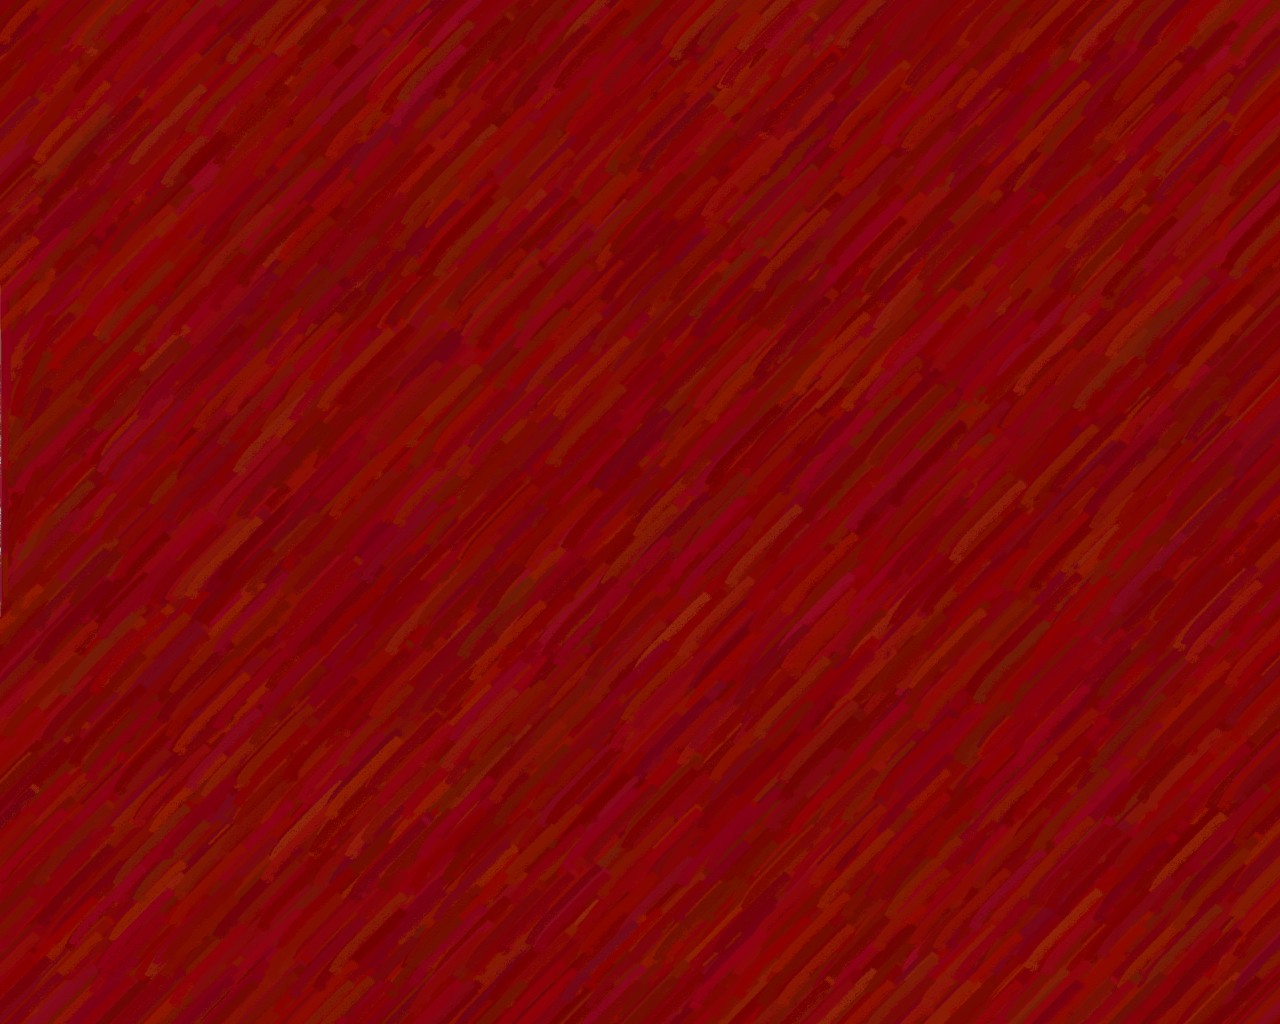 red maroon line background - photo #27